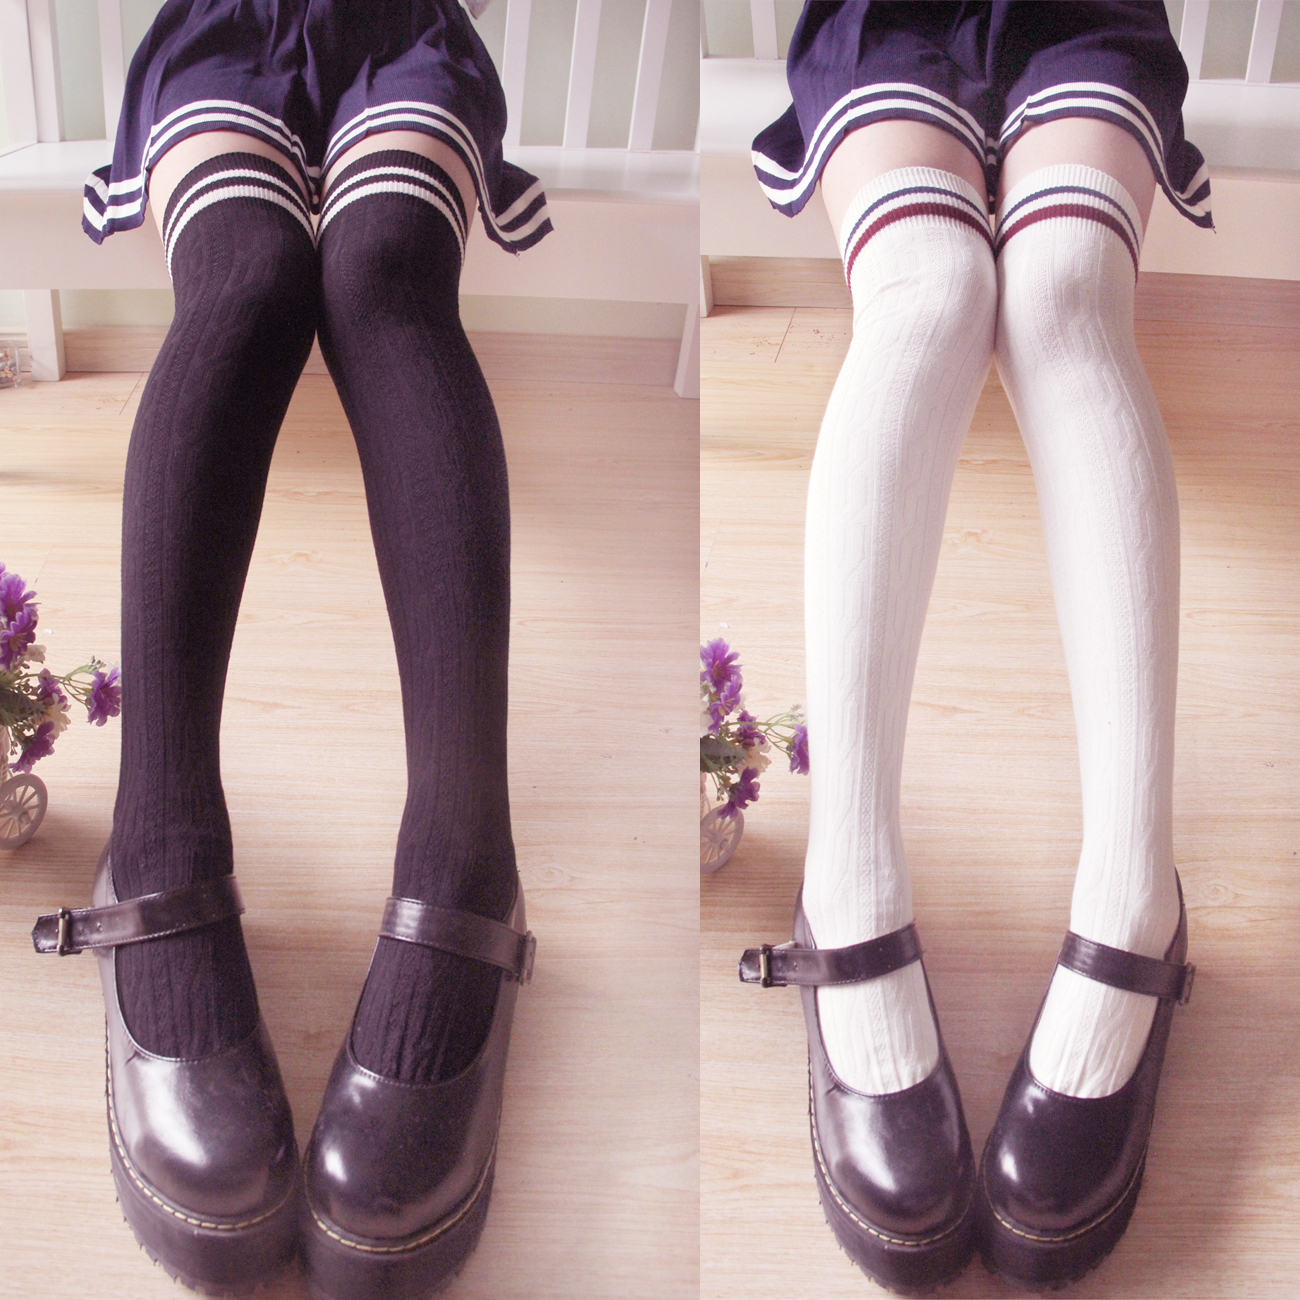 3479d6a38 Cute Kawaii Japanese Striped Stockings · Cute Kawaii {harajuku ...